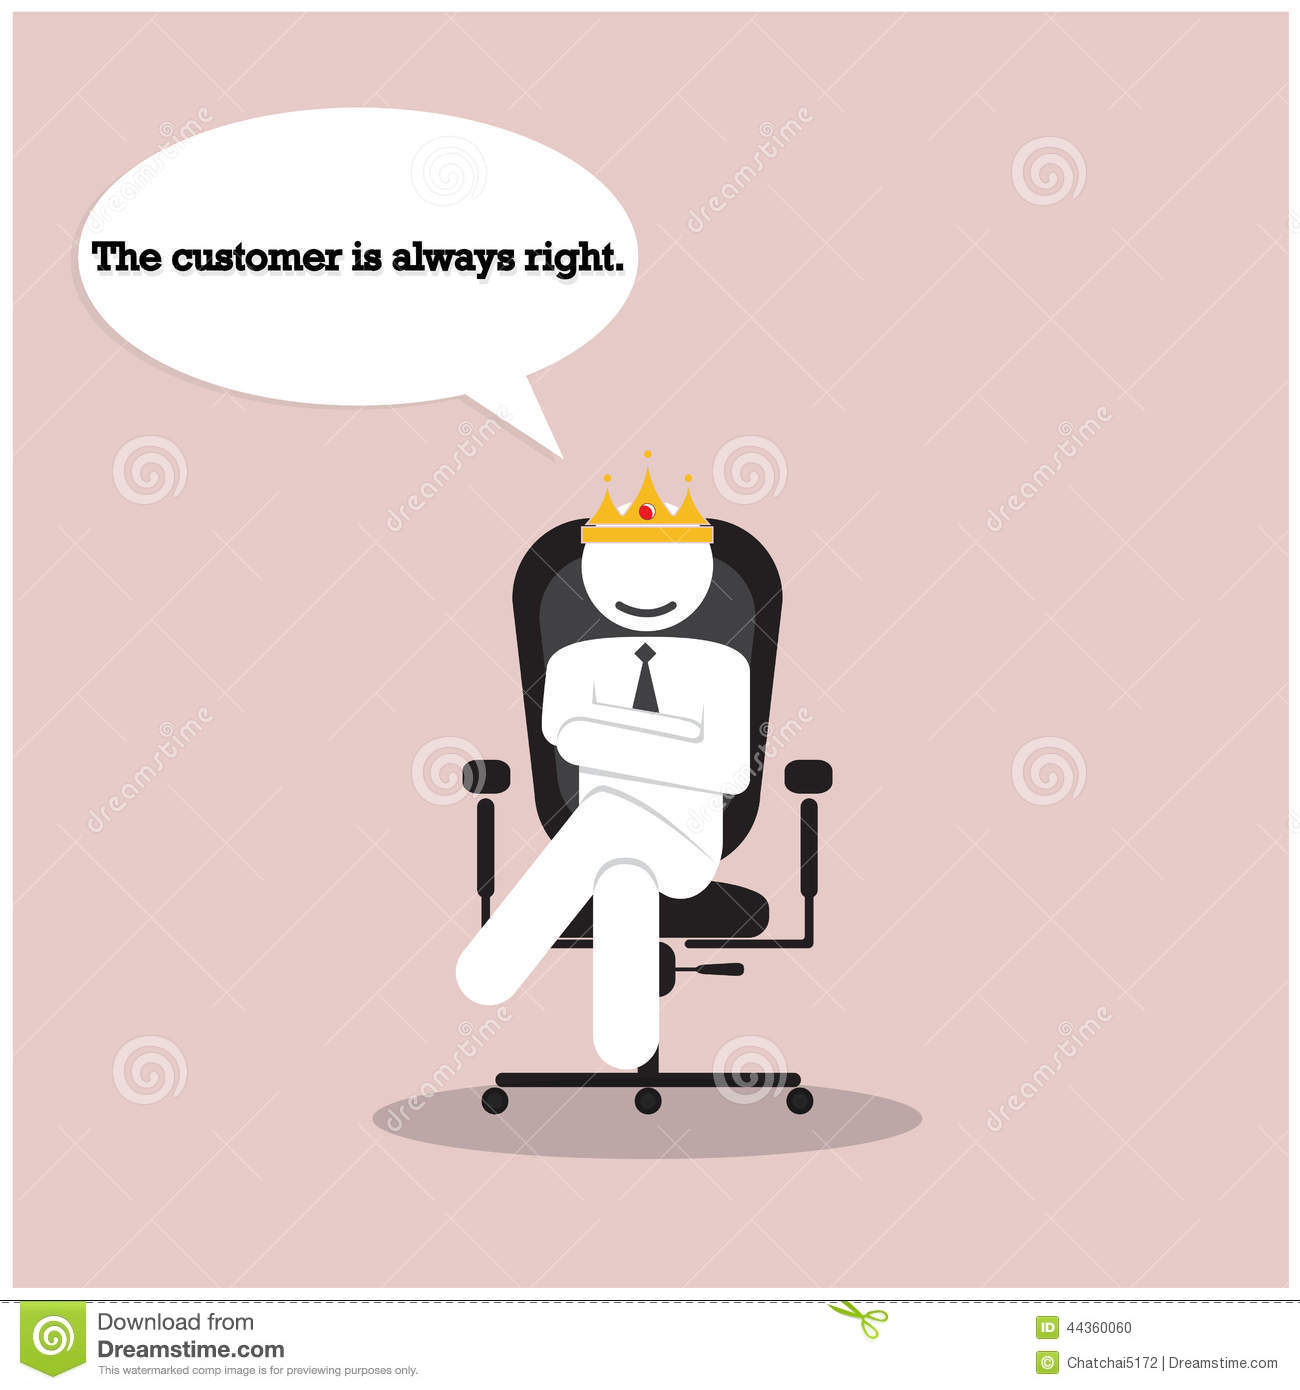 customer is always right essay order essay dreamstime com